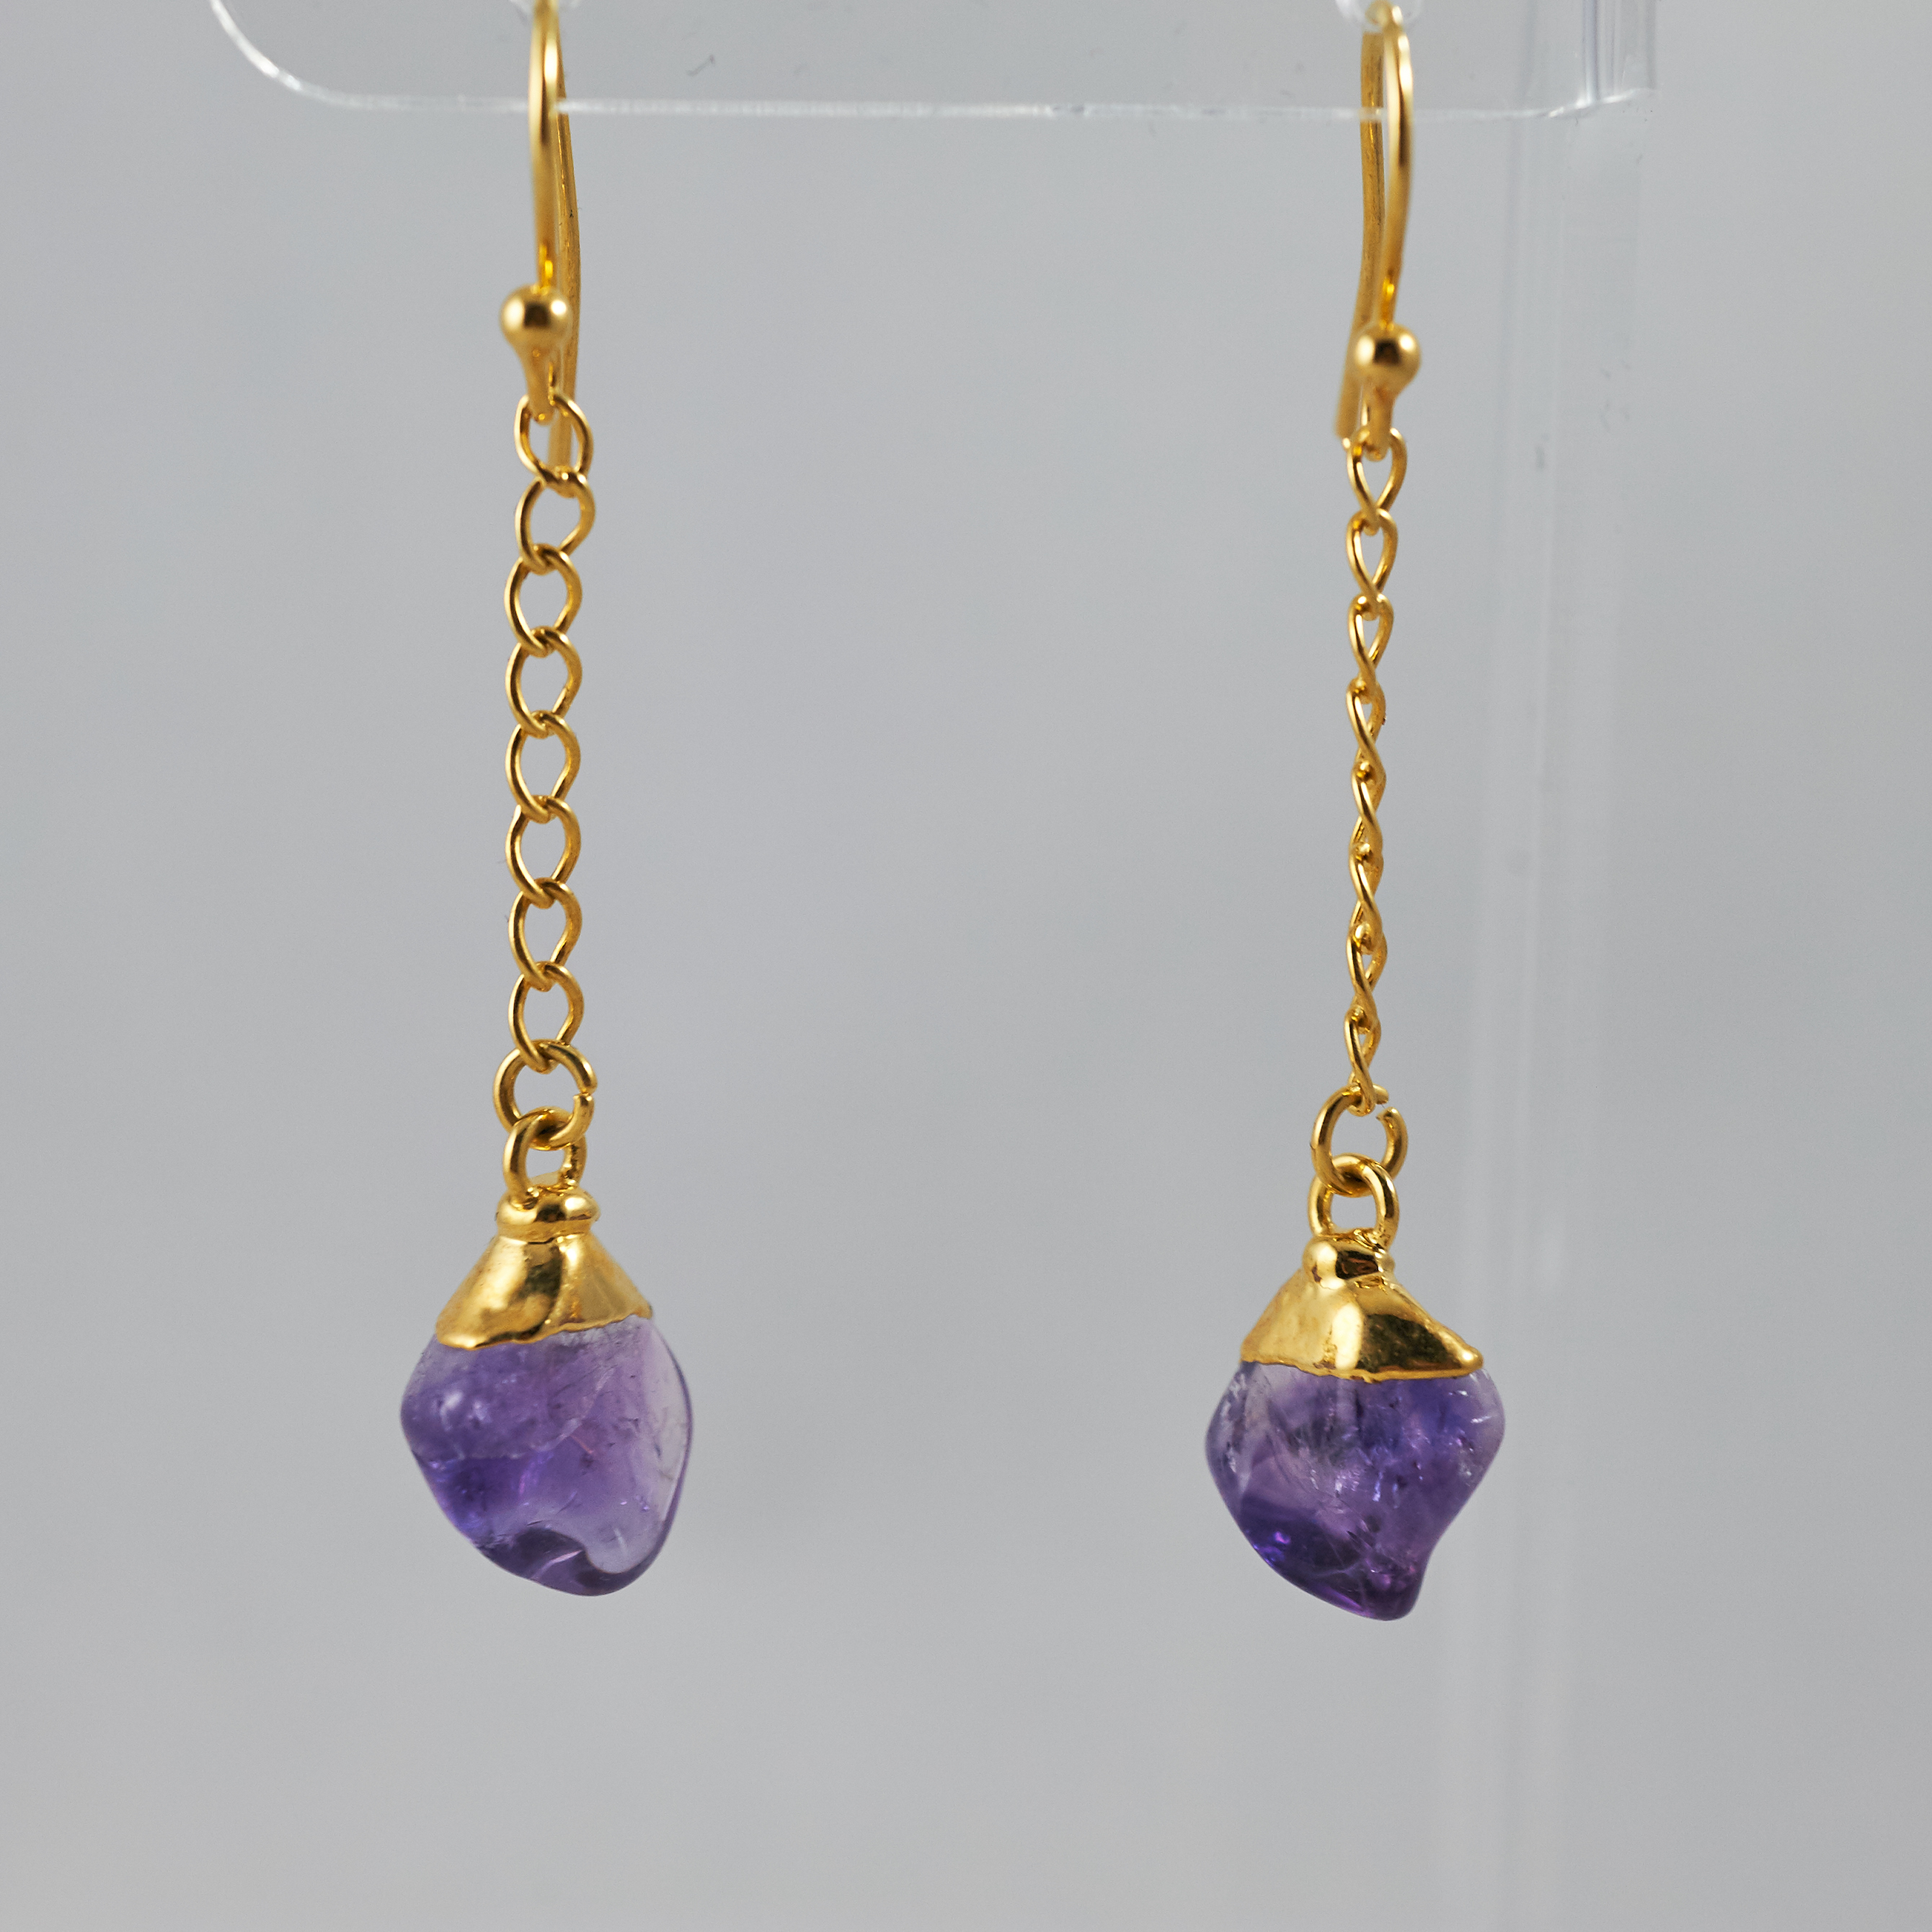 Amethyst Polished Point Dangling Earrings .jpg GJE00005